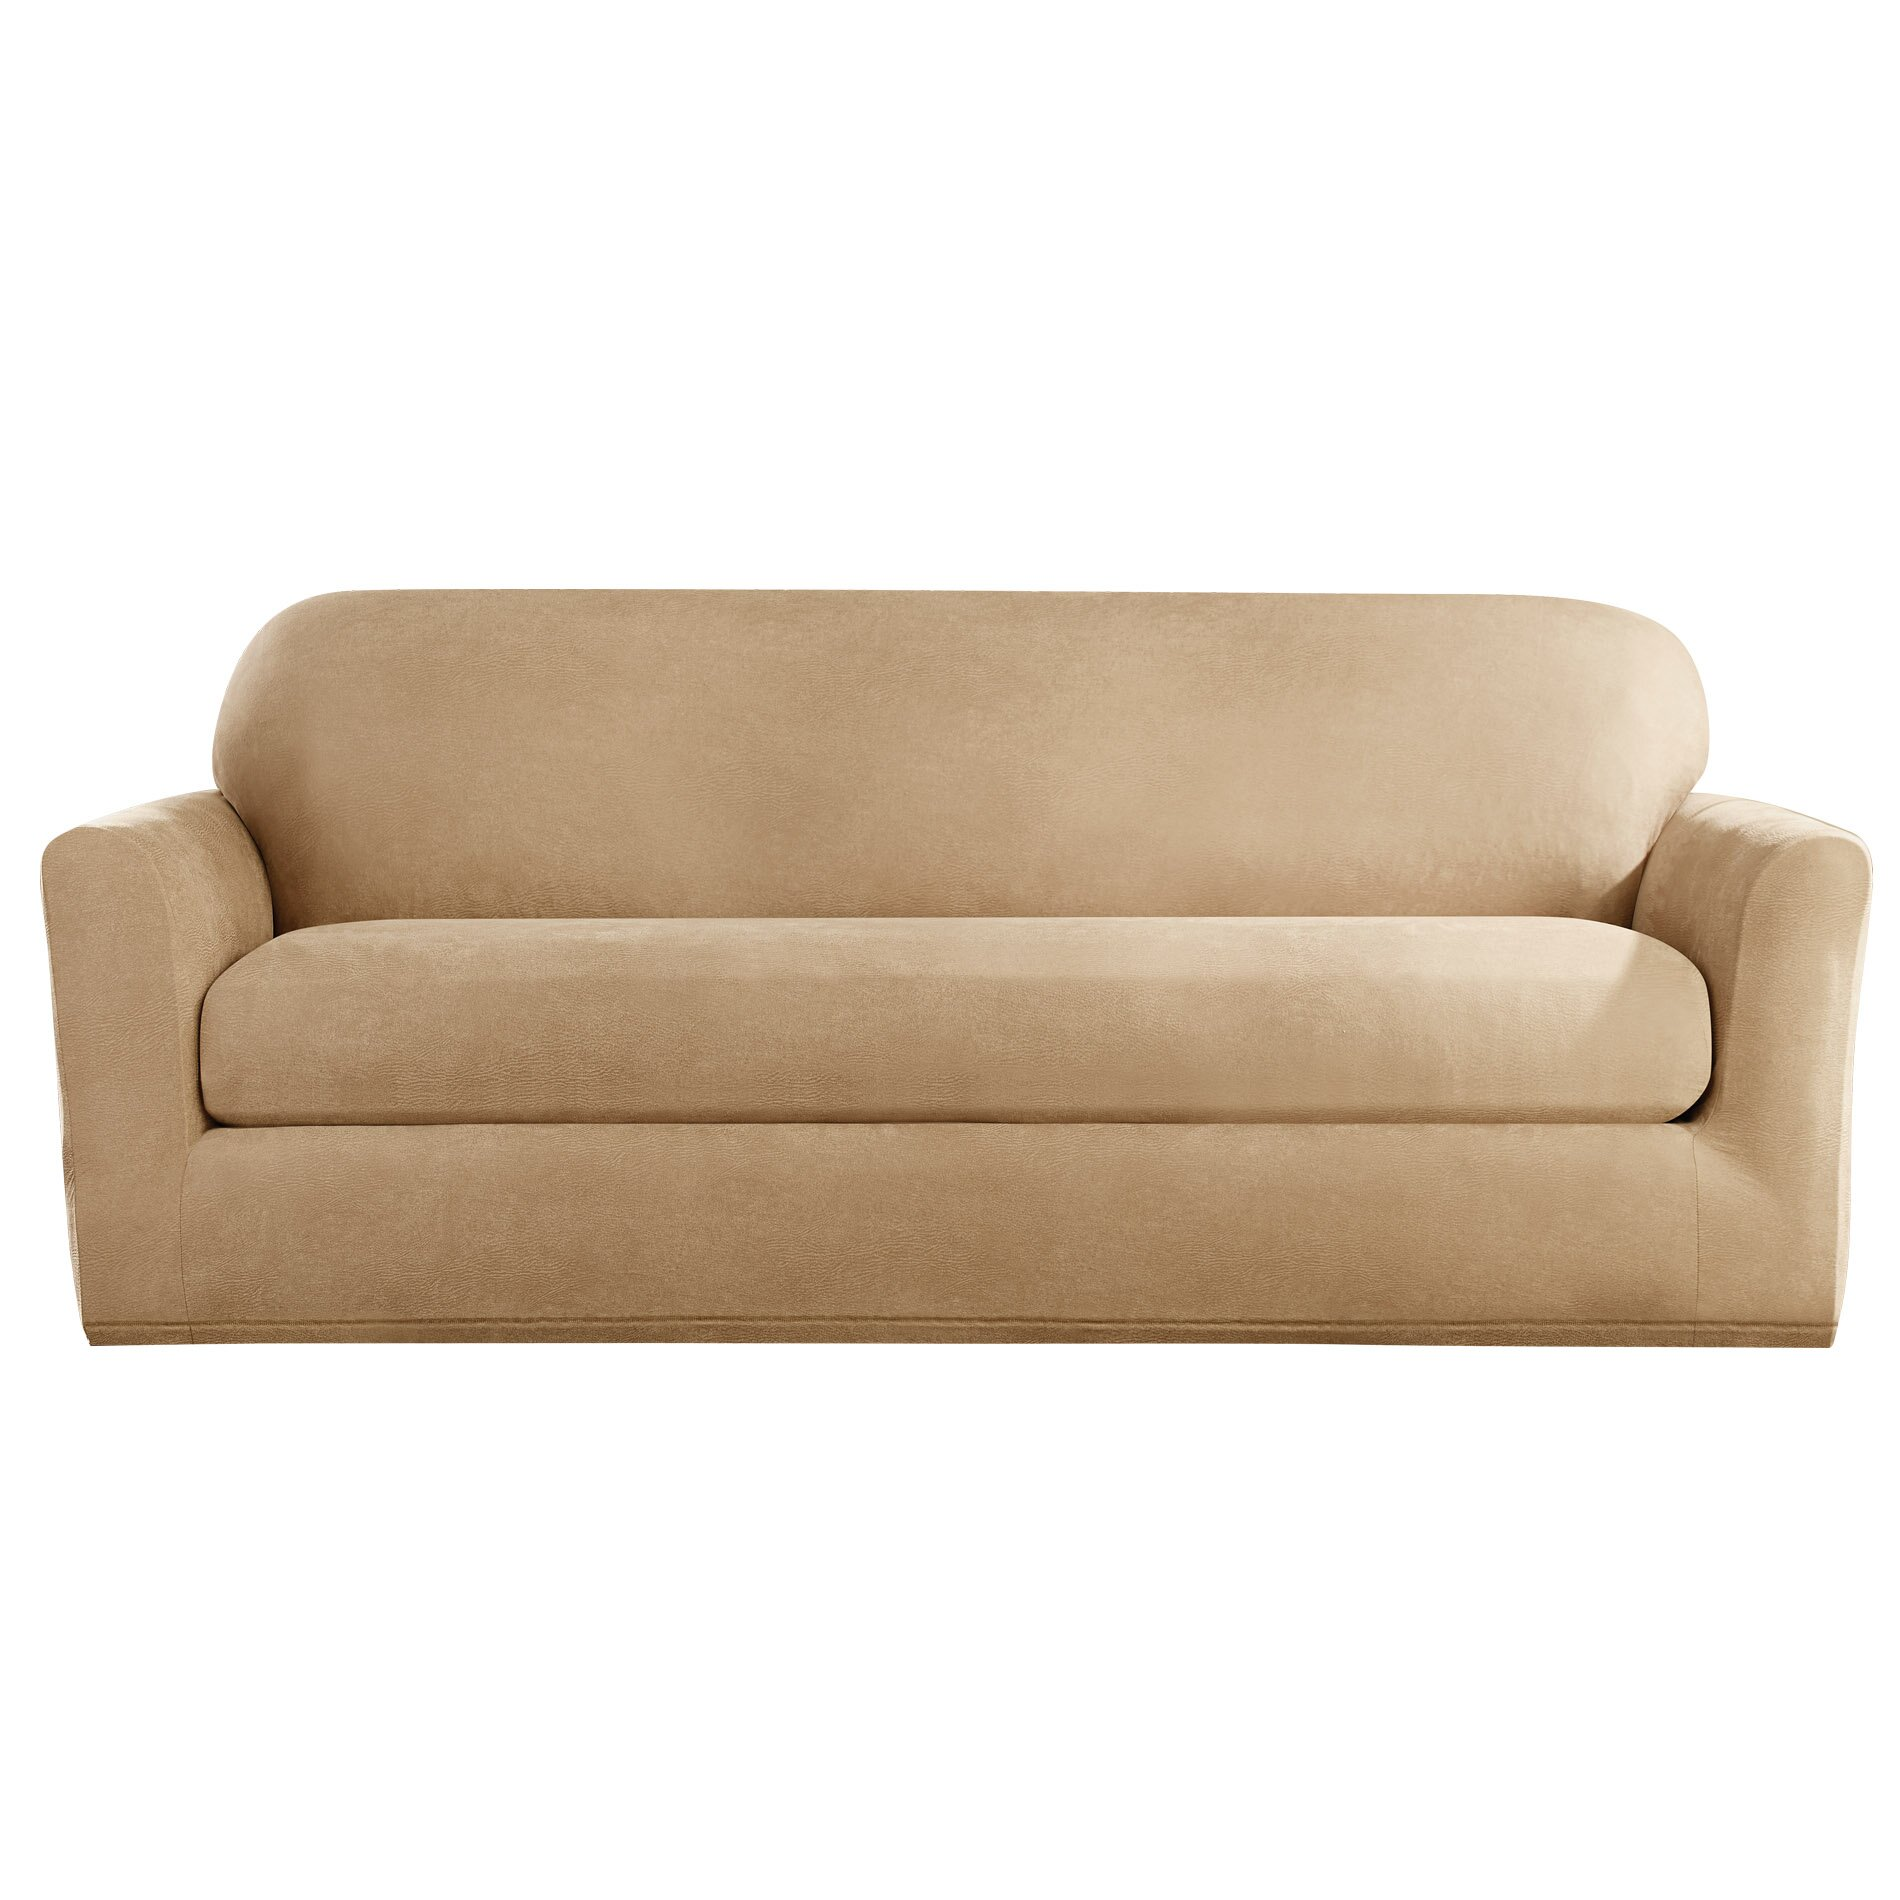 Sure Fit Stretch Leather Sofa Slipcover Reviews